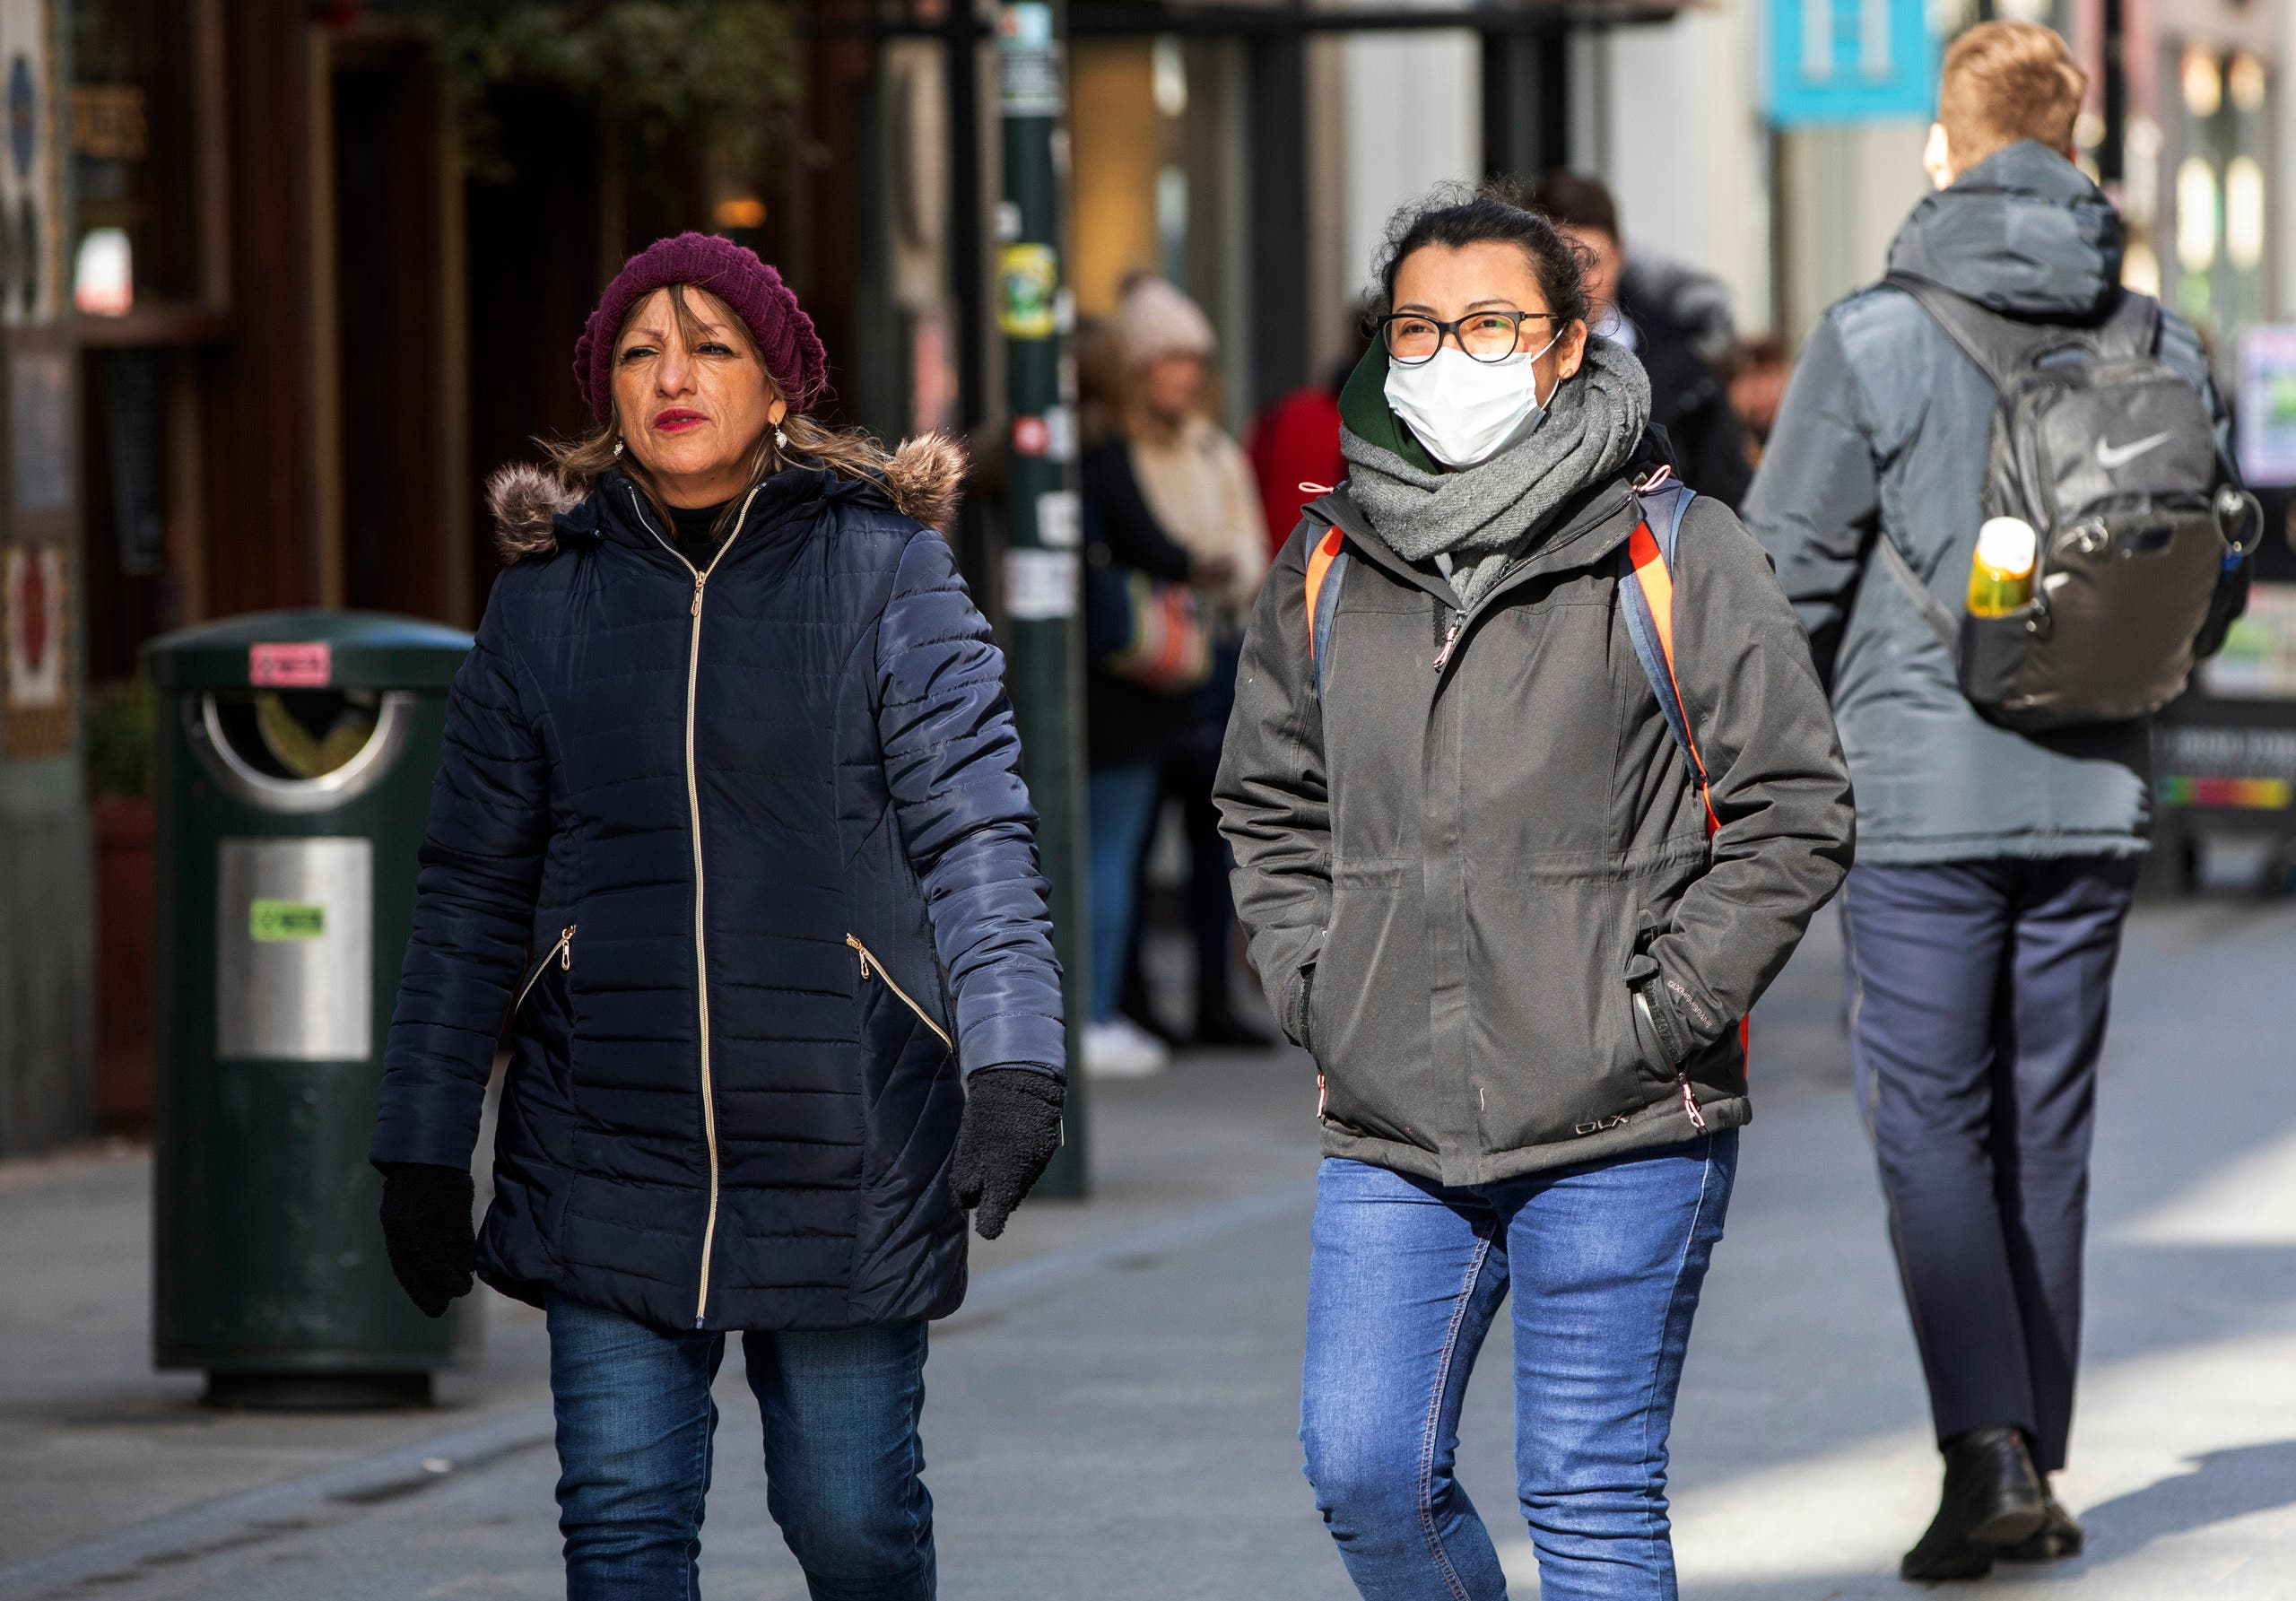 A woman wears a surgical mask while shopping in the Grafton shopping area of in Dublin on March 12, 2020. (AP)